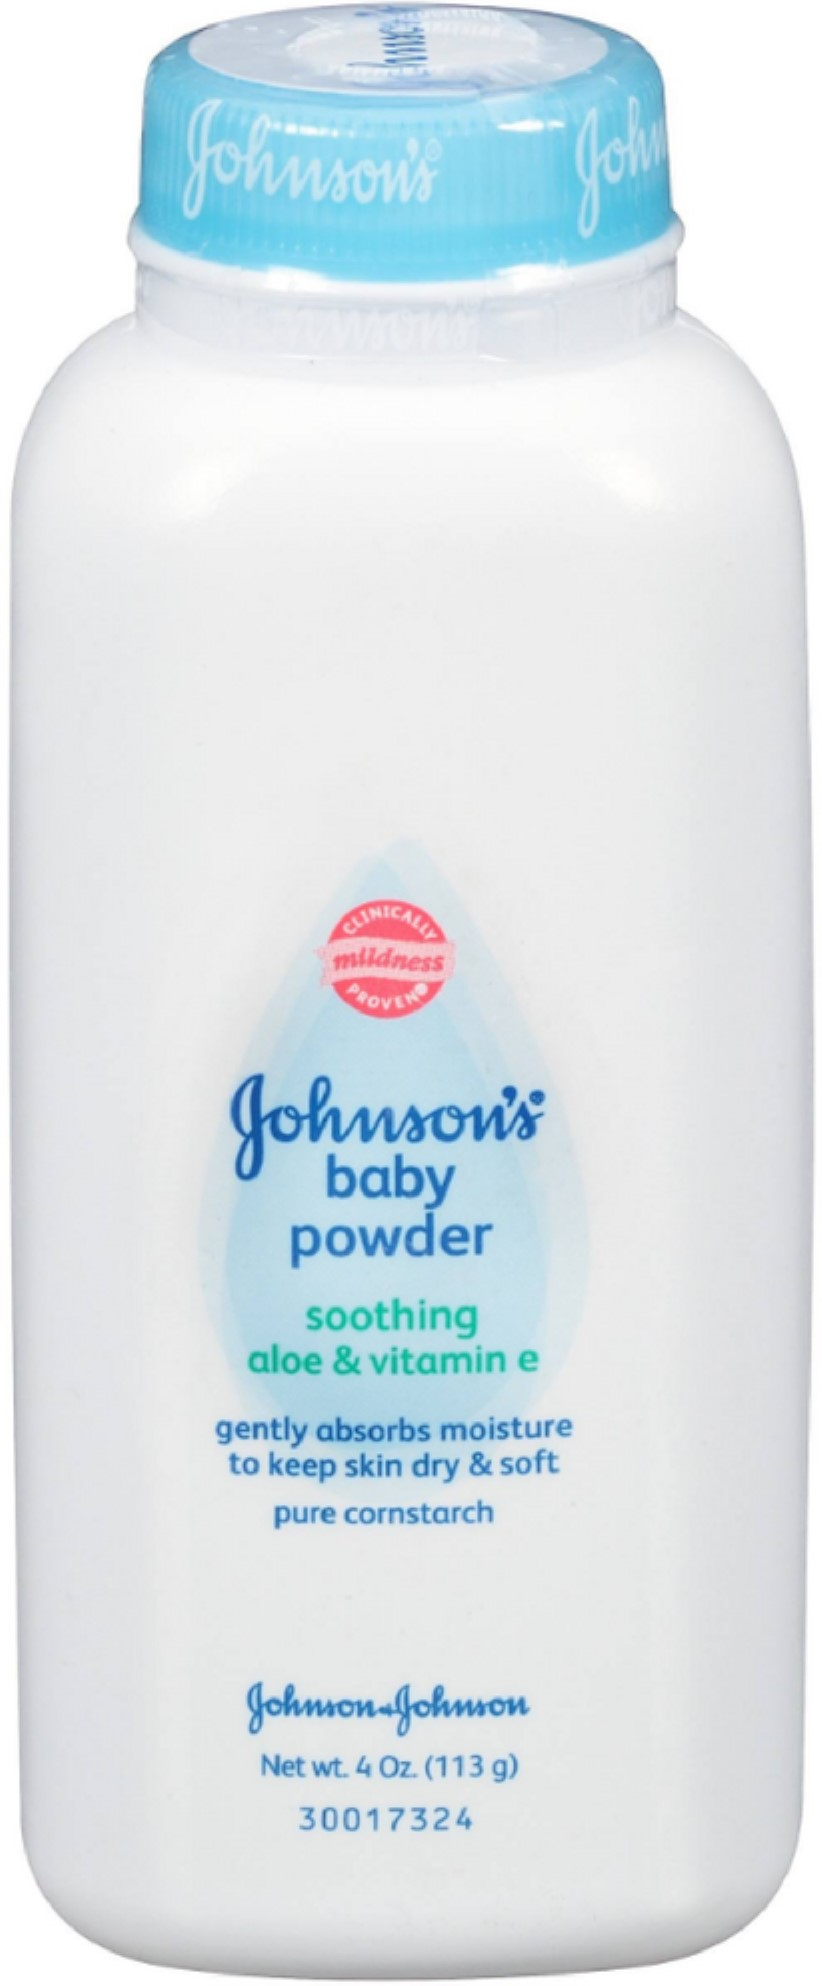 JOHNSON'S Pure Cornstarch Baby Powder 4 oz (Pack of 2) by